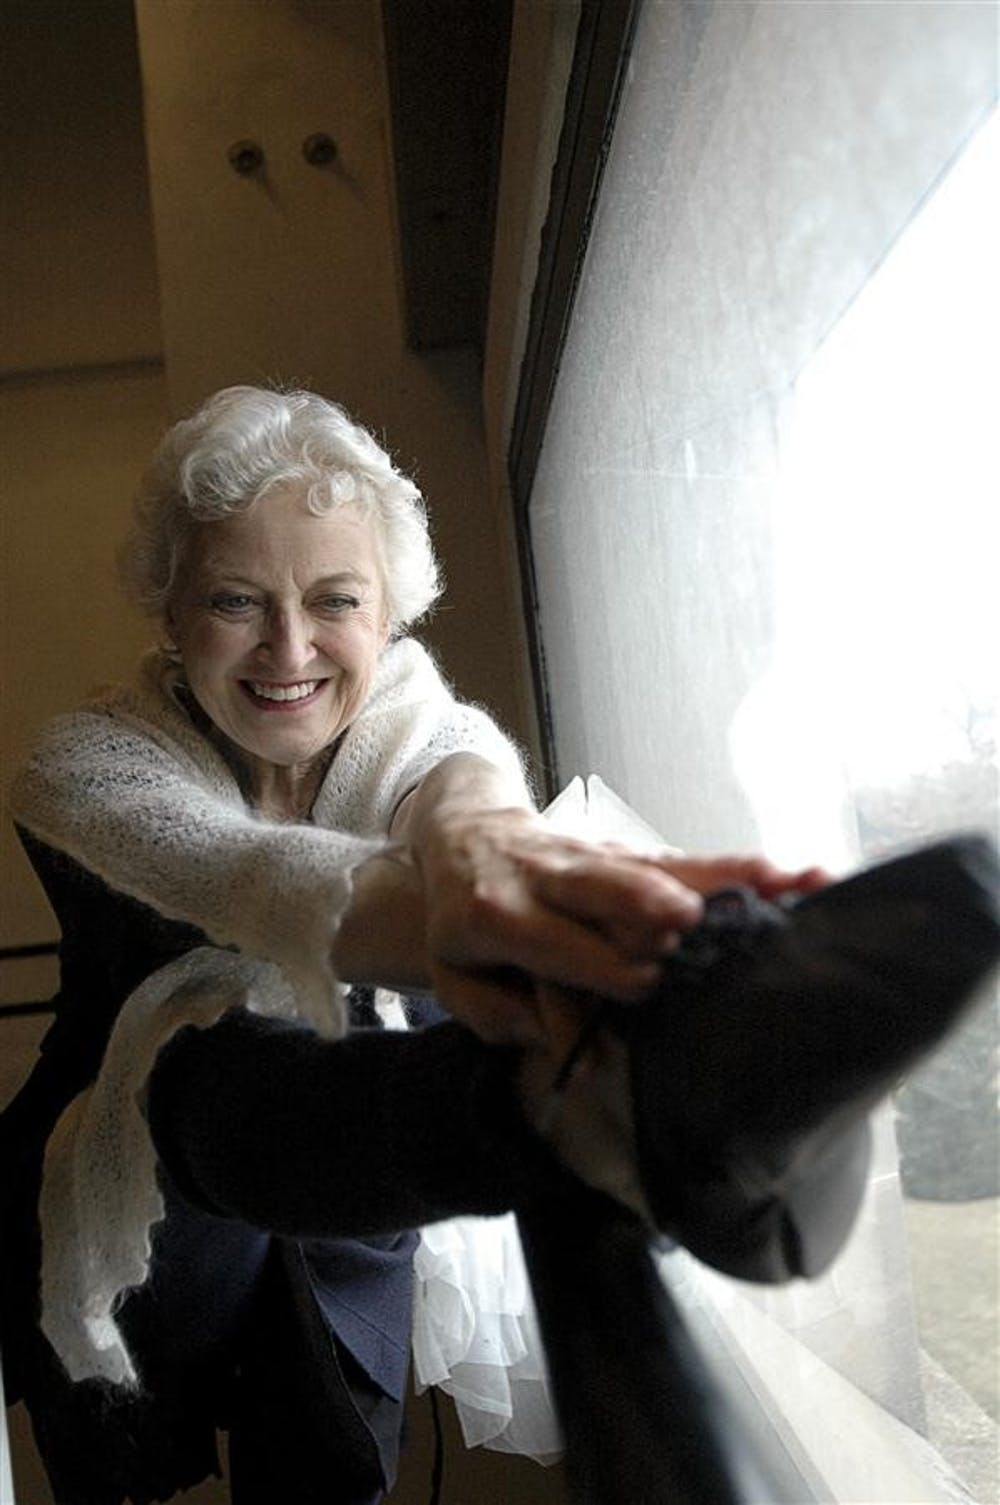 <p>Ballet professor Violette Verdy stretches on a barre Feb. 10, 2009, at the Musical Arts Center. Verdy, a native of France, received the Kathy Ziliak Anderson Chair in Ballet.</p>